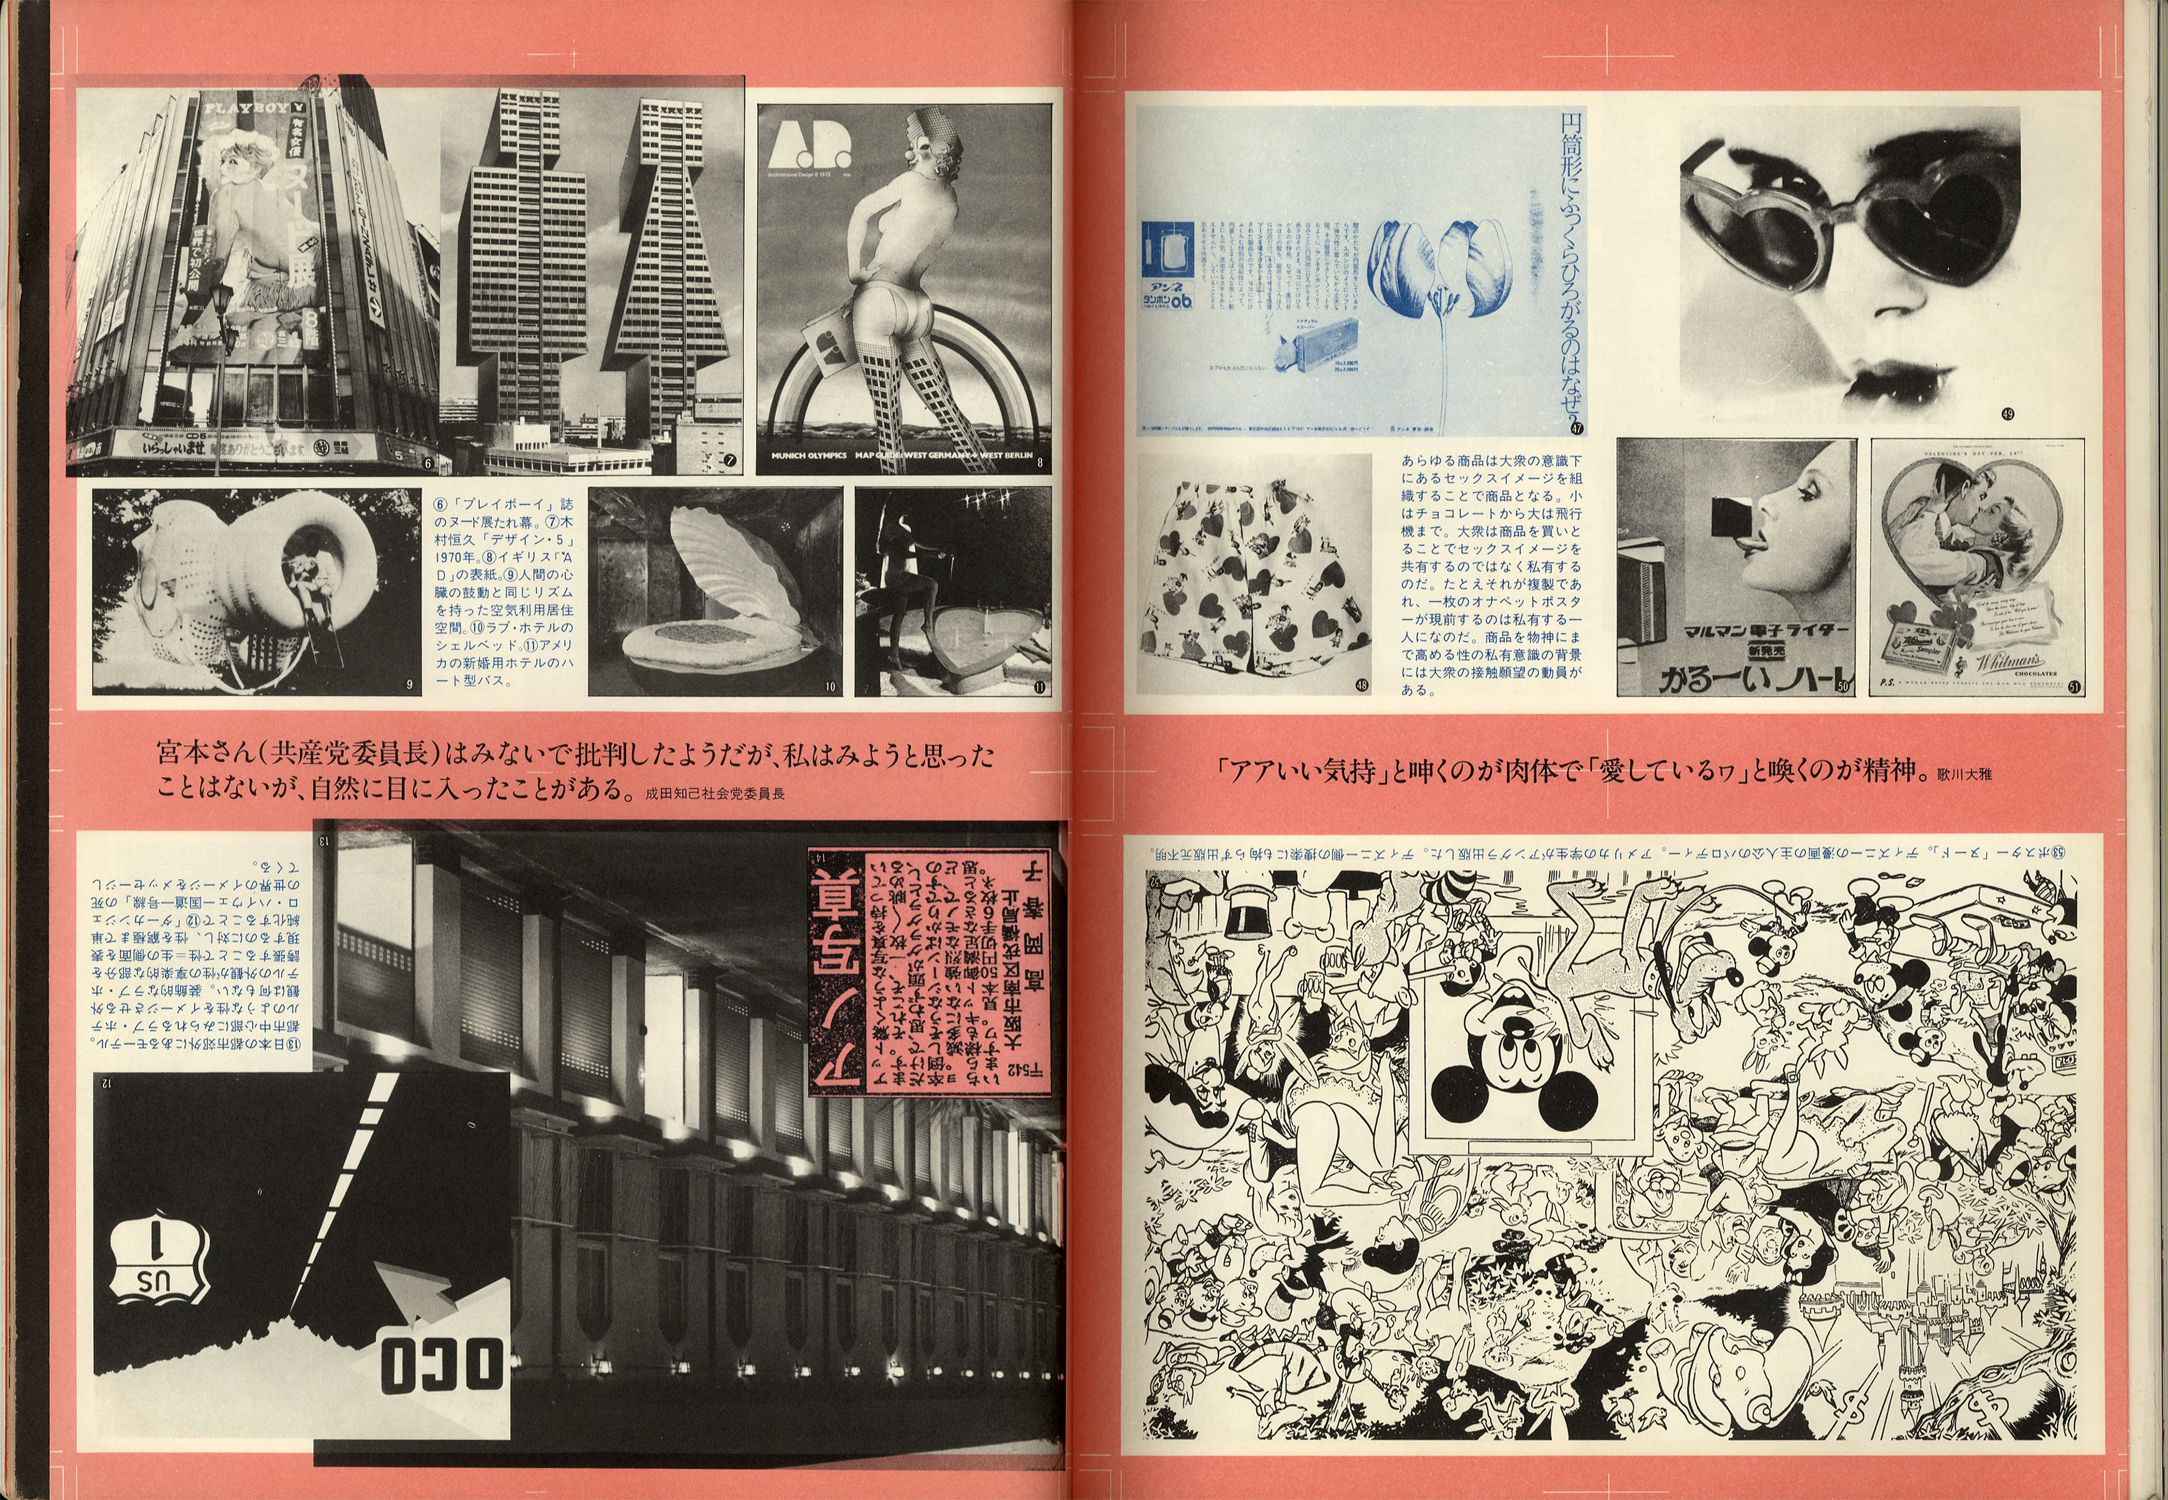 季刊 デザイン 16号・冬|a quarterly review of design autumn 1976[image2]